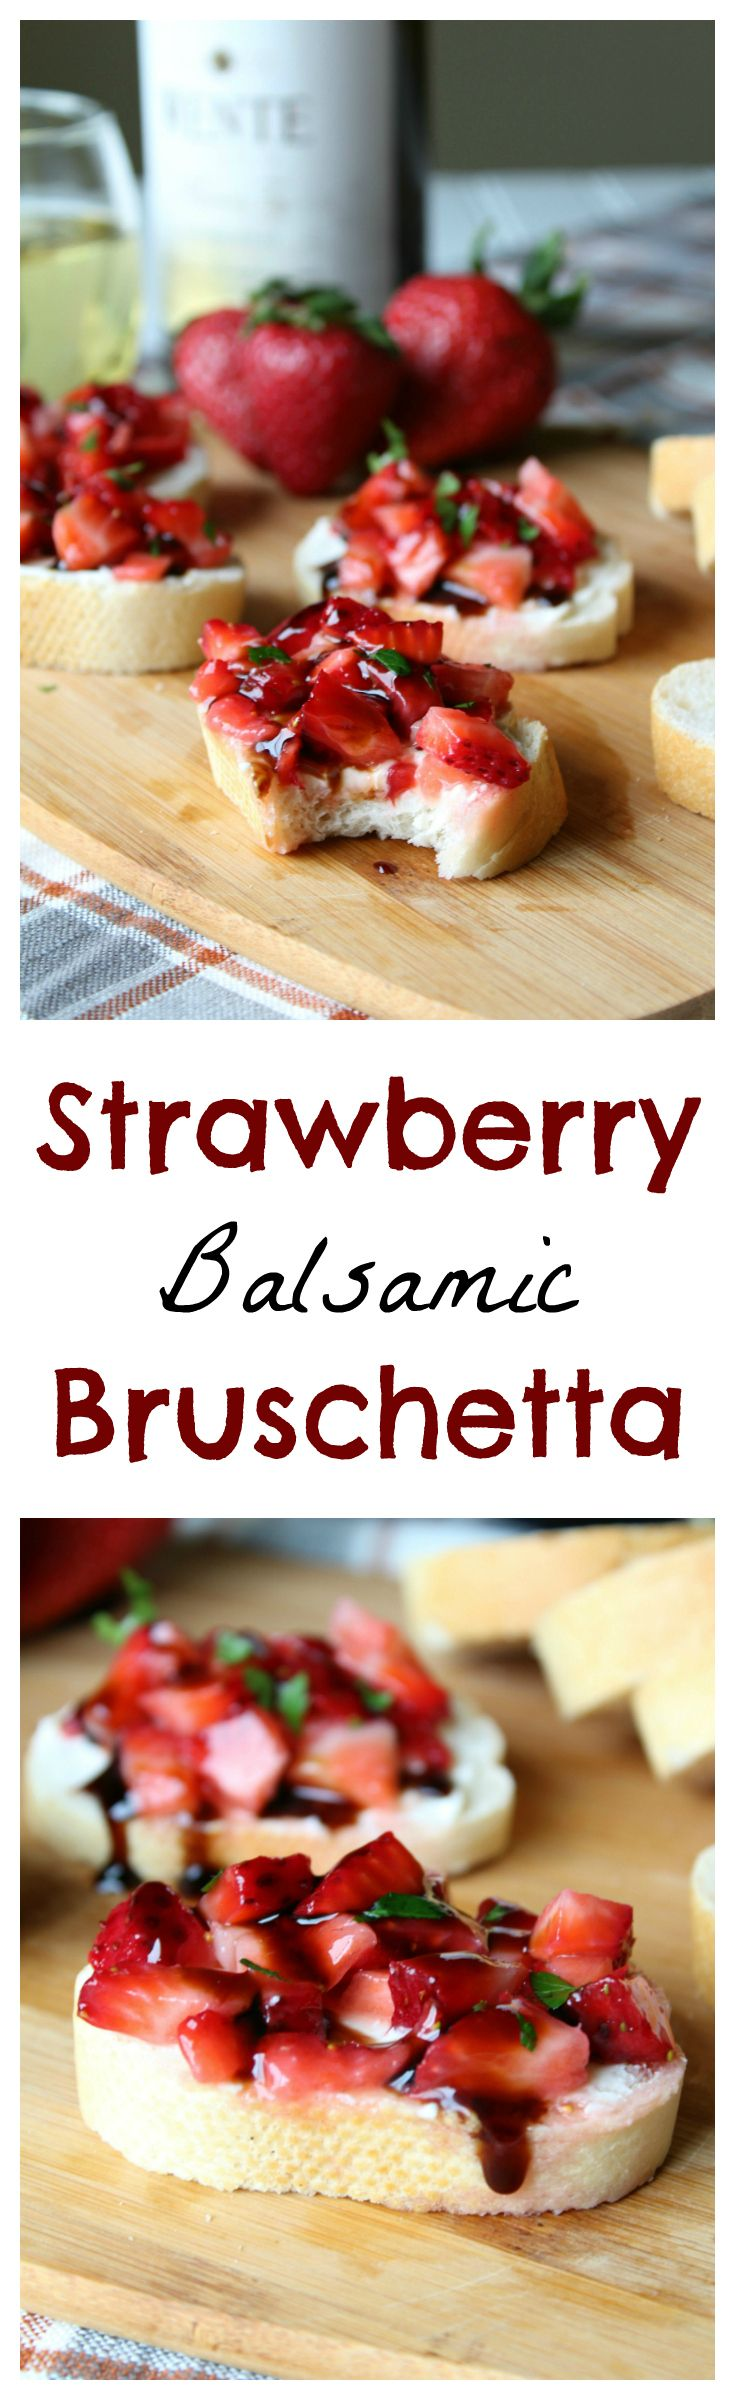 Strawberry Balsamic Bruschetta - A flavorful appetizer that pairs perfectly with a glass of wine! Made with strawberries, mascarpone, and a balsamic glaze! #ad #LoveOfTheJourney @Wente